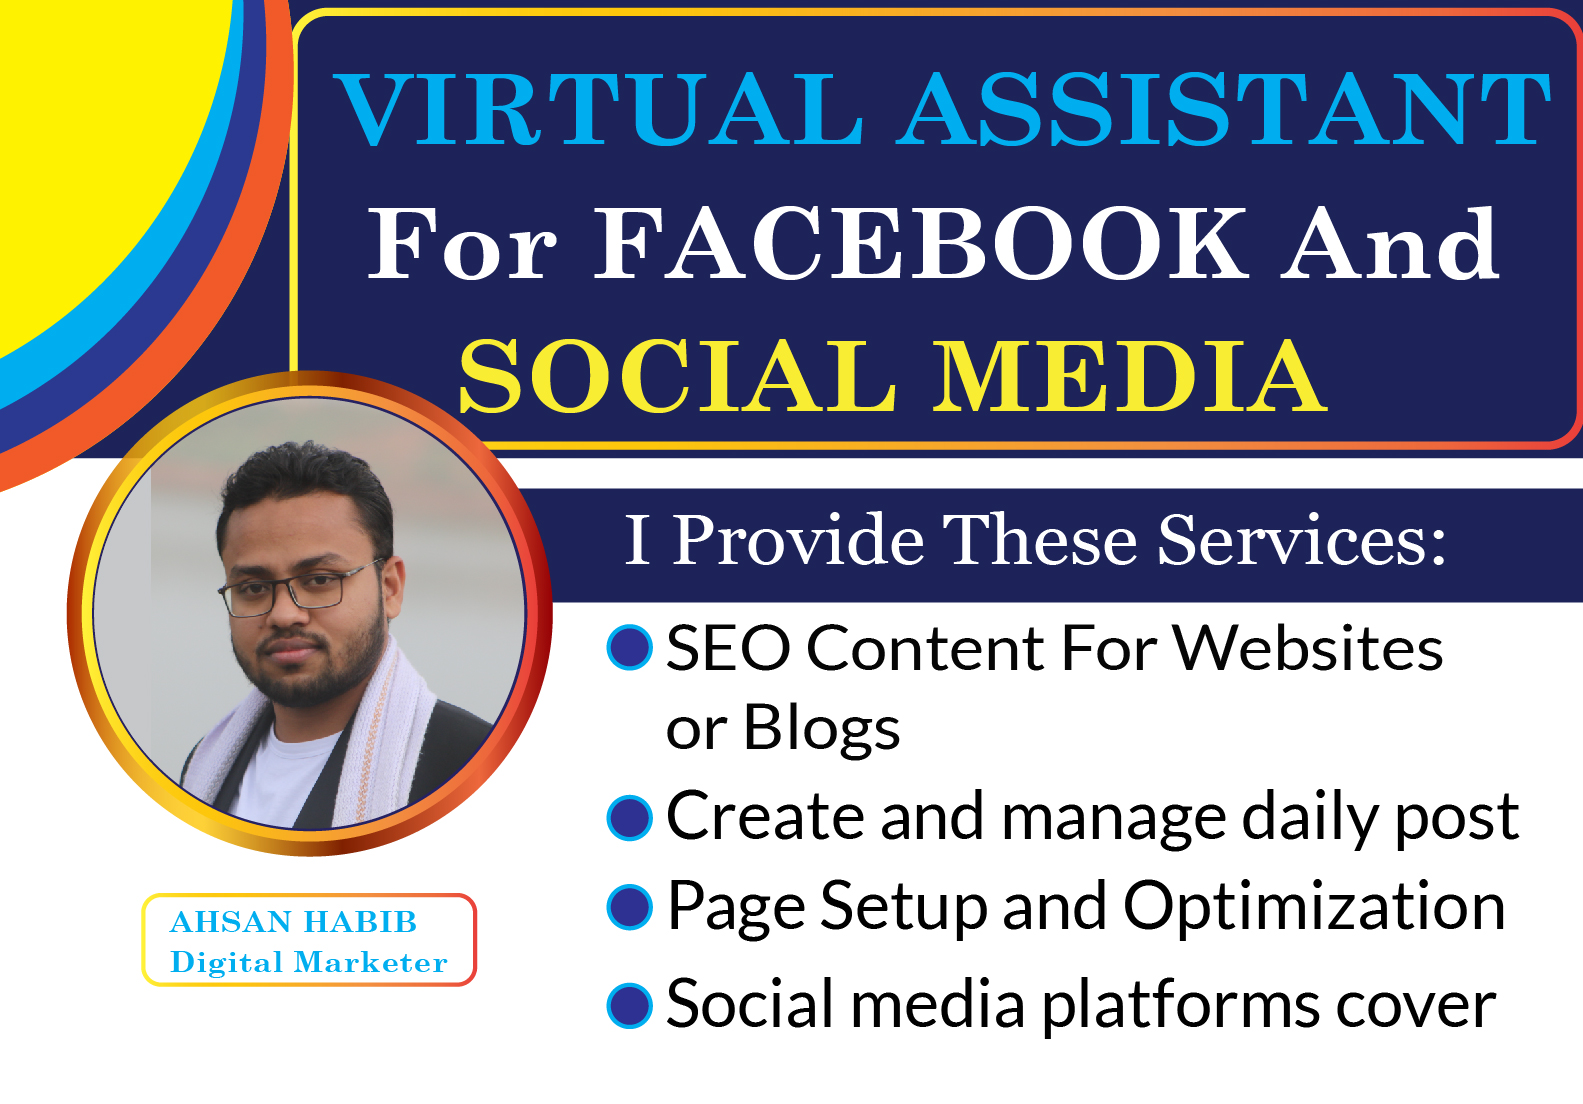 I will be your Virtual Assistant for Social Media Manager